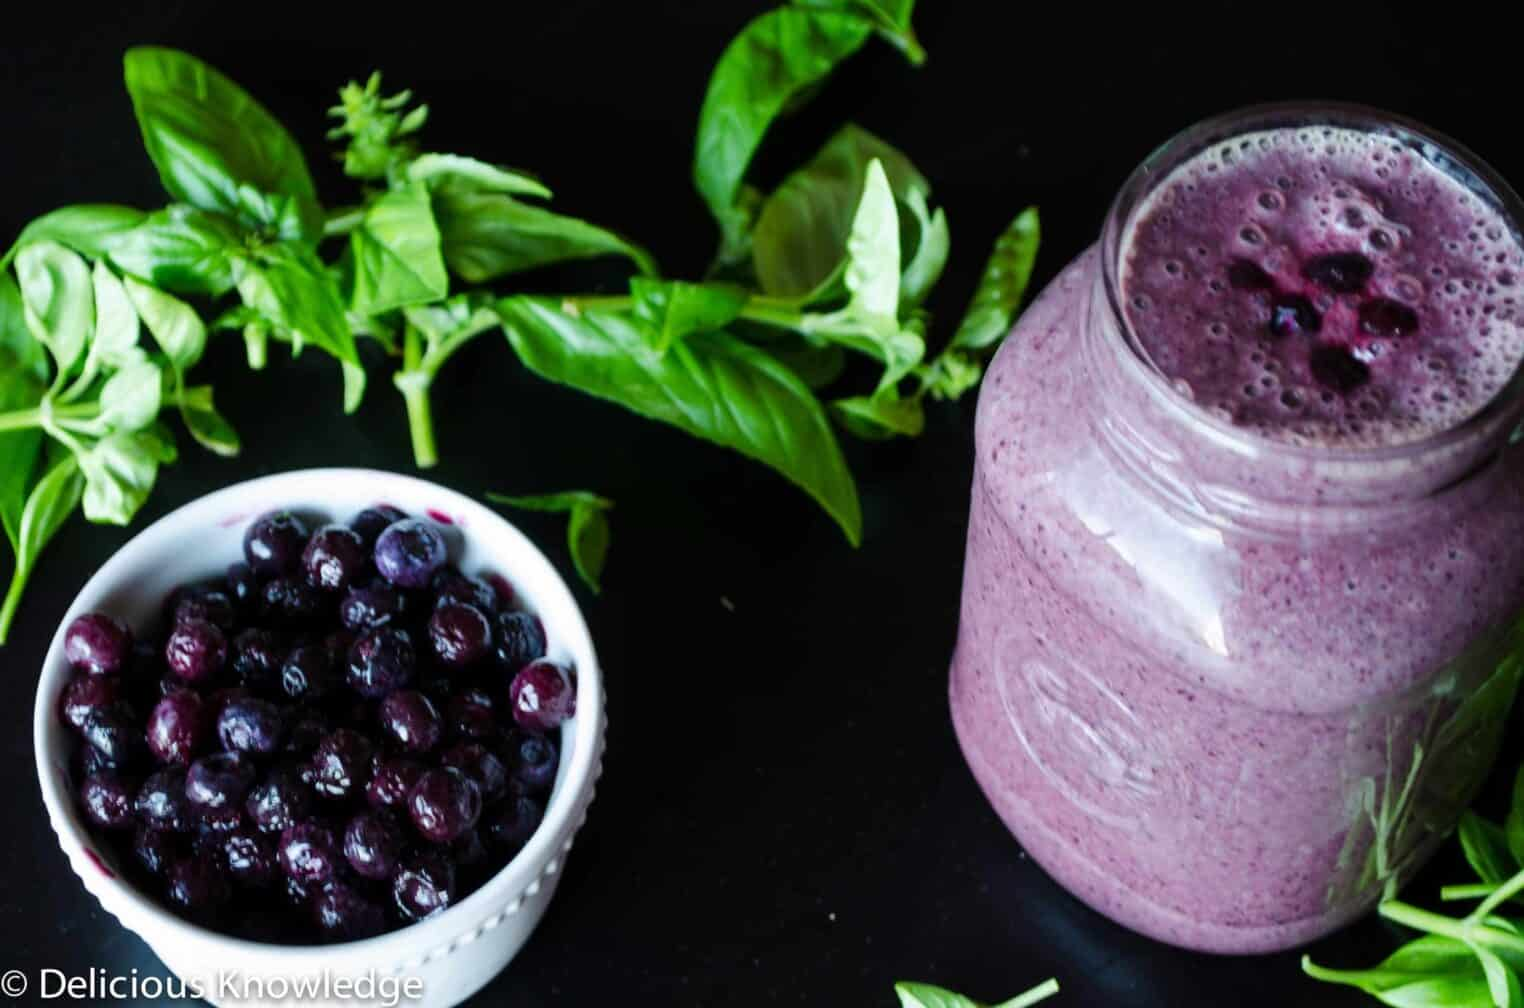 Blueberry Basil Smoothie! An incredibly refreshing smoothie made from blueberries and basil. Gluten-free and vegan.